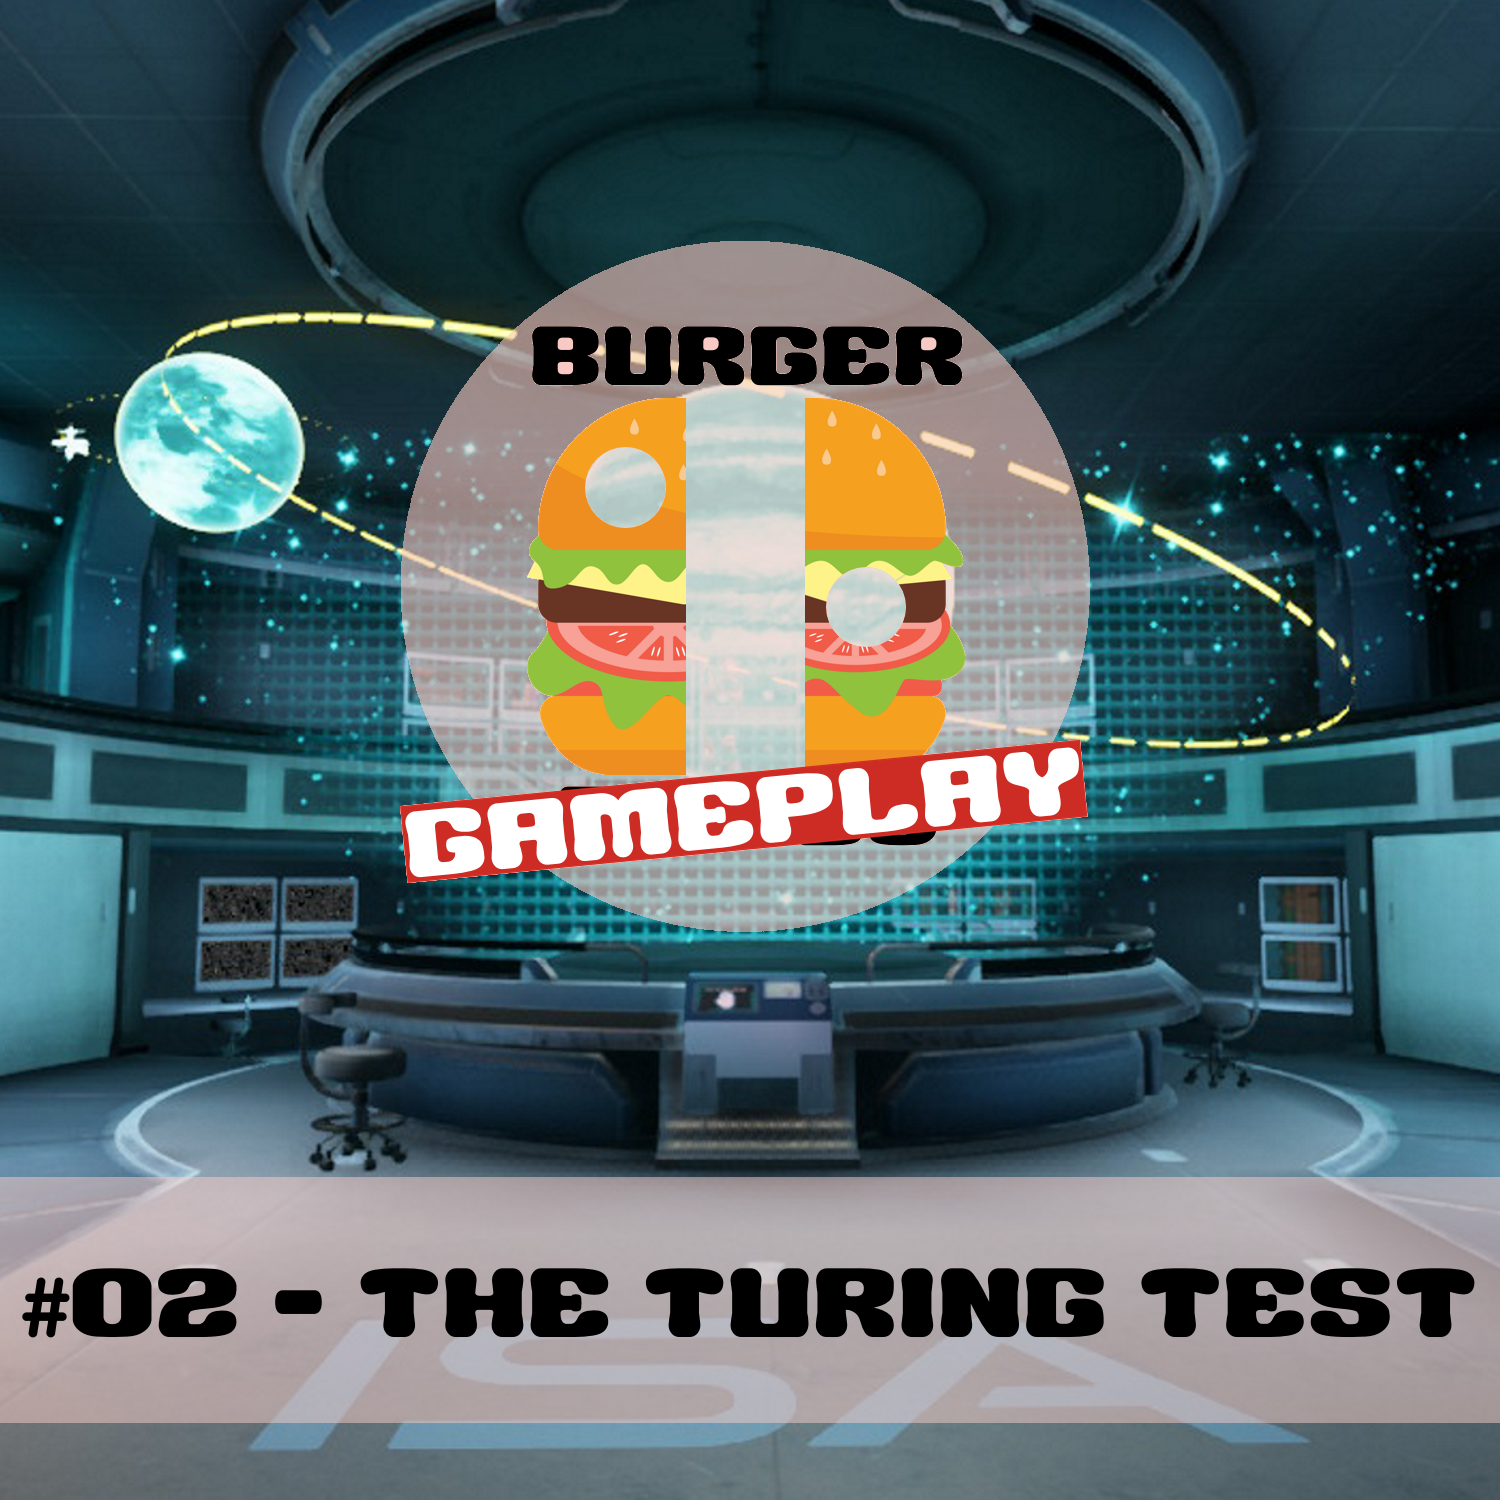 #02 - The Turing Test